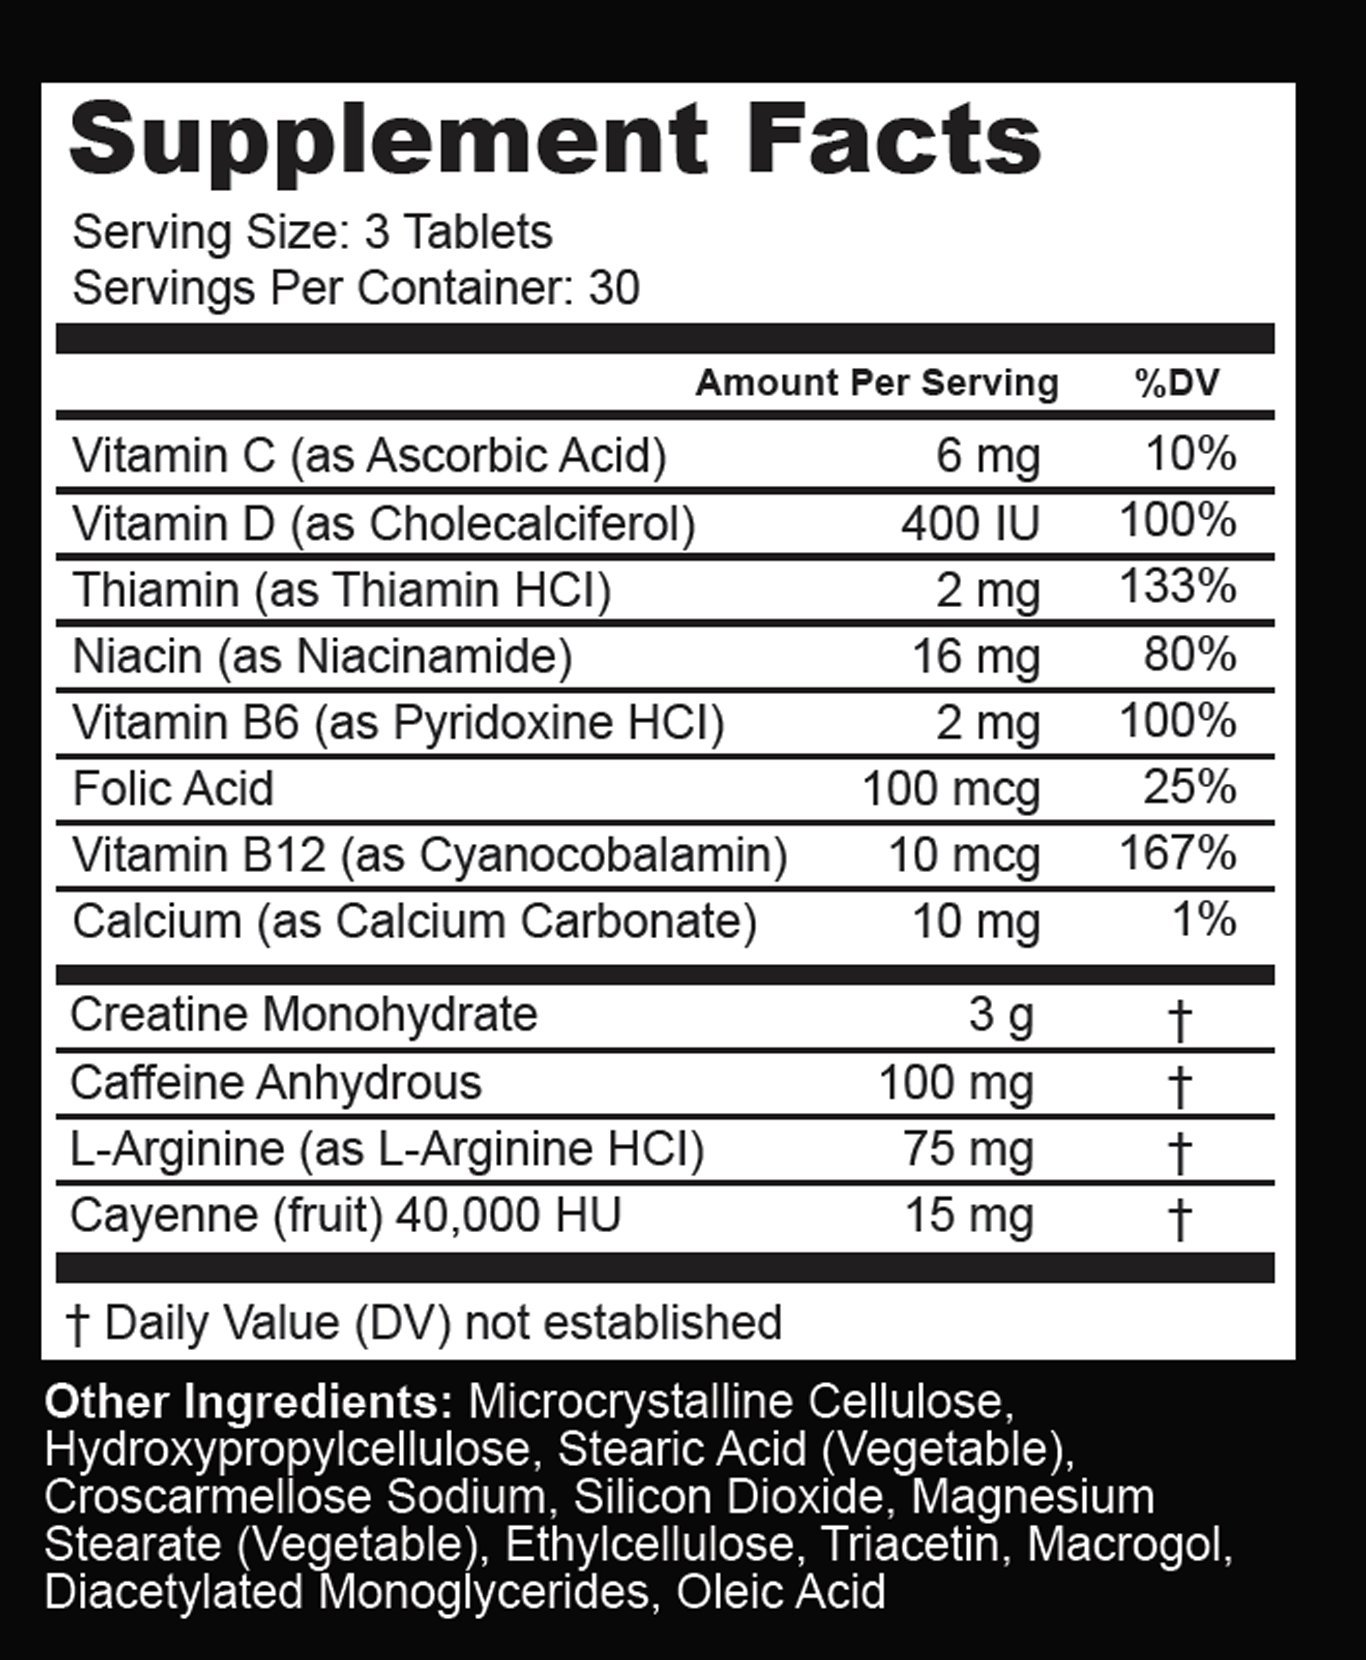 Dyna Storm Nutrition Pre Workout, Creatine Pre Workout Supplement, tablets, 1 Bottle (30 day supply) by Dyna Storm Nutrition (Image #2)